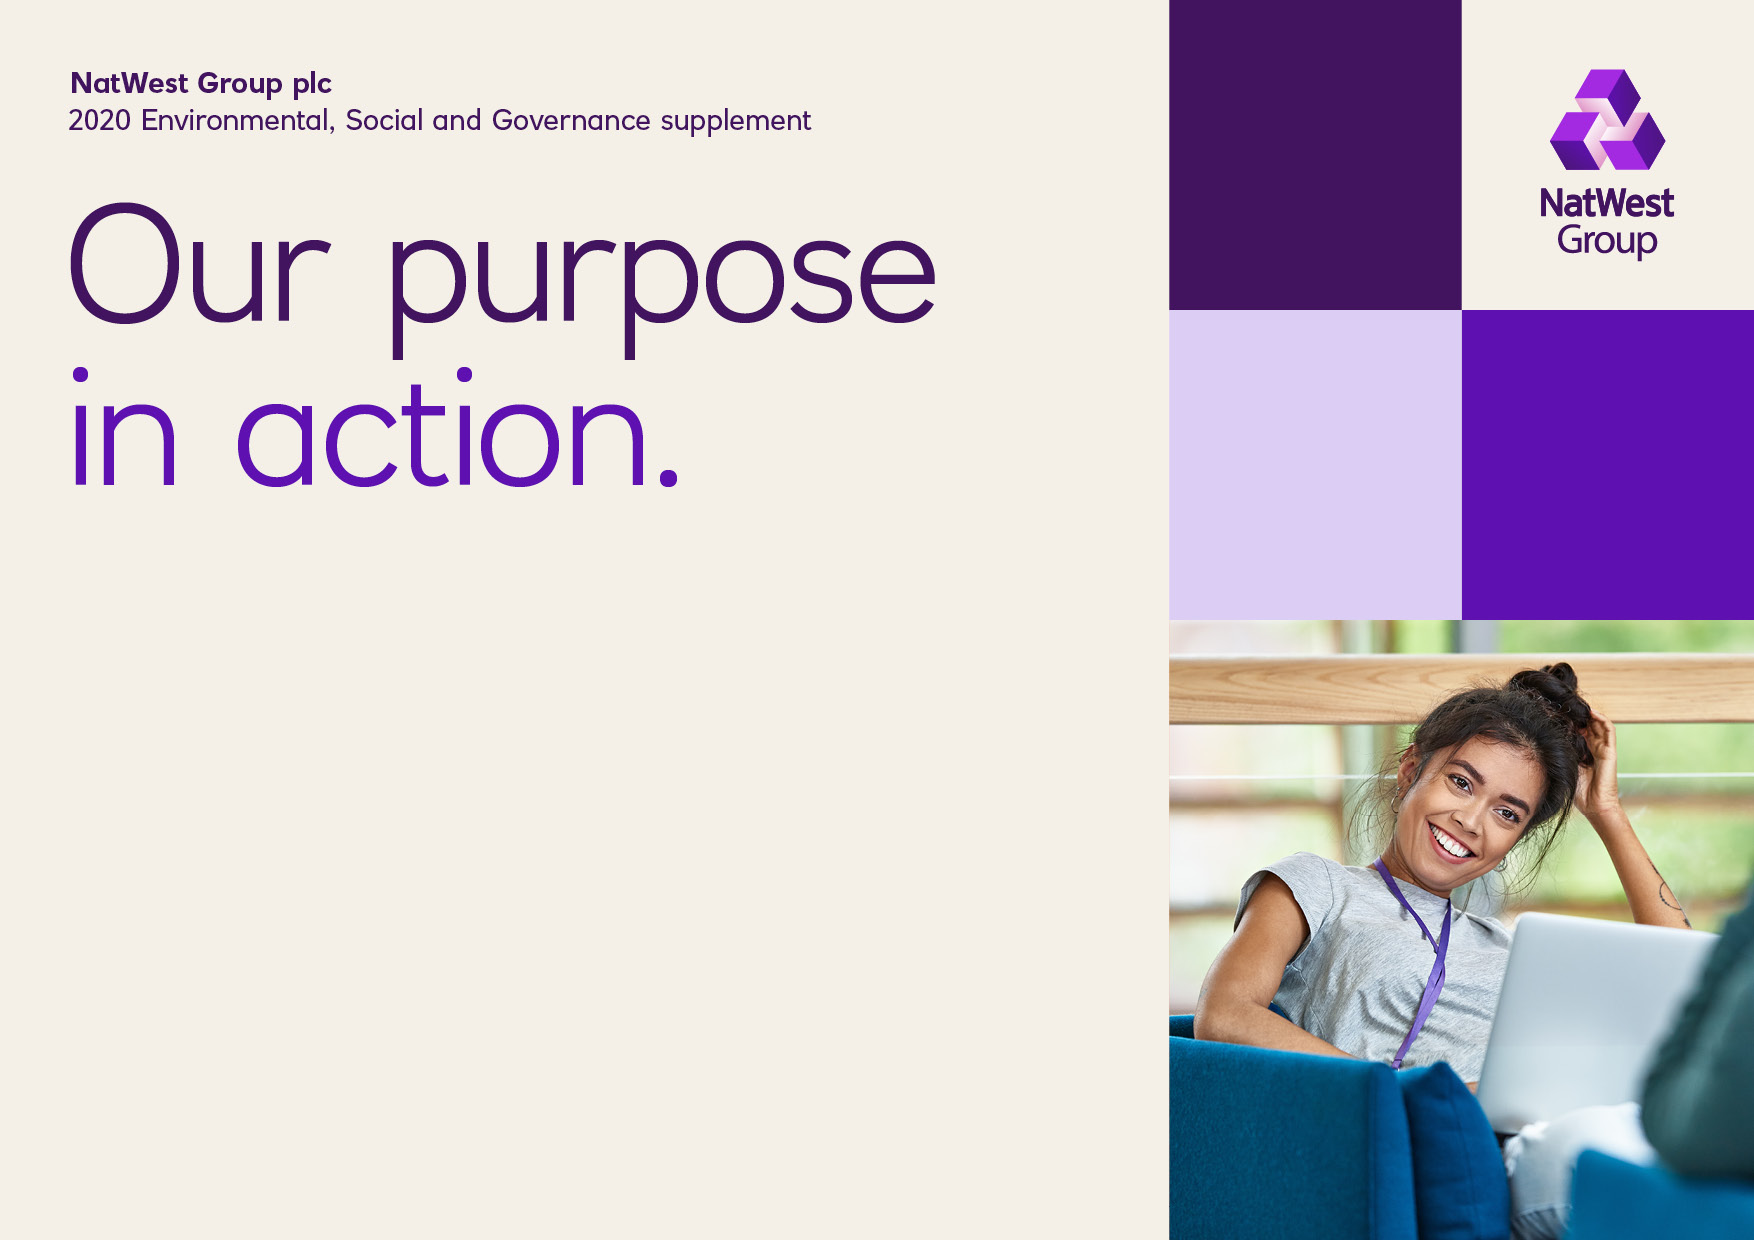 NatWest Report Cover